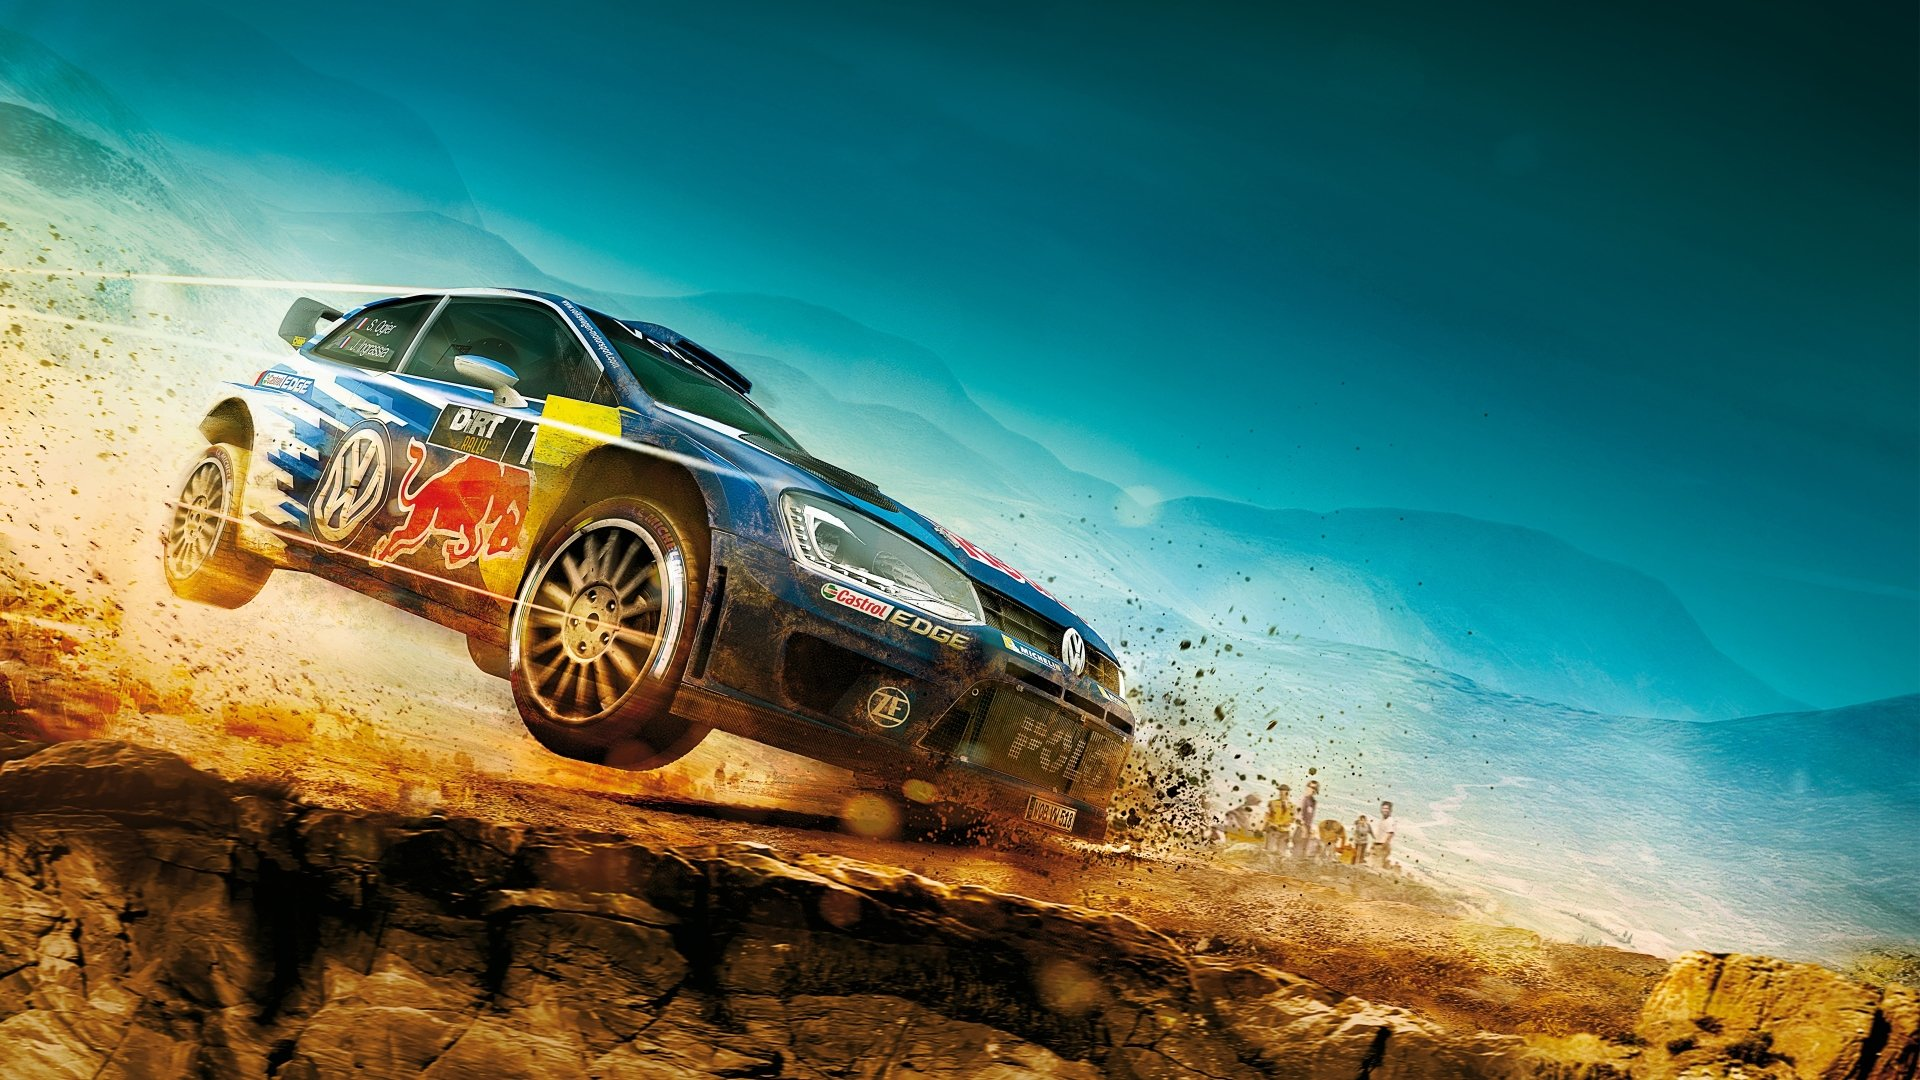 Codemasters races off to a new company